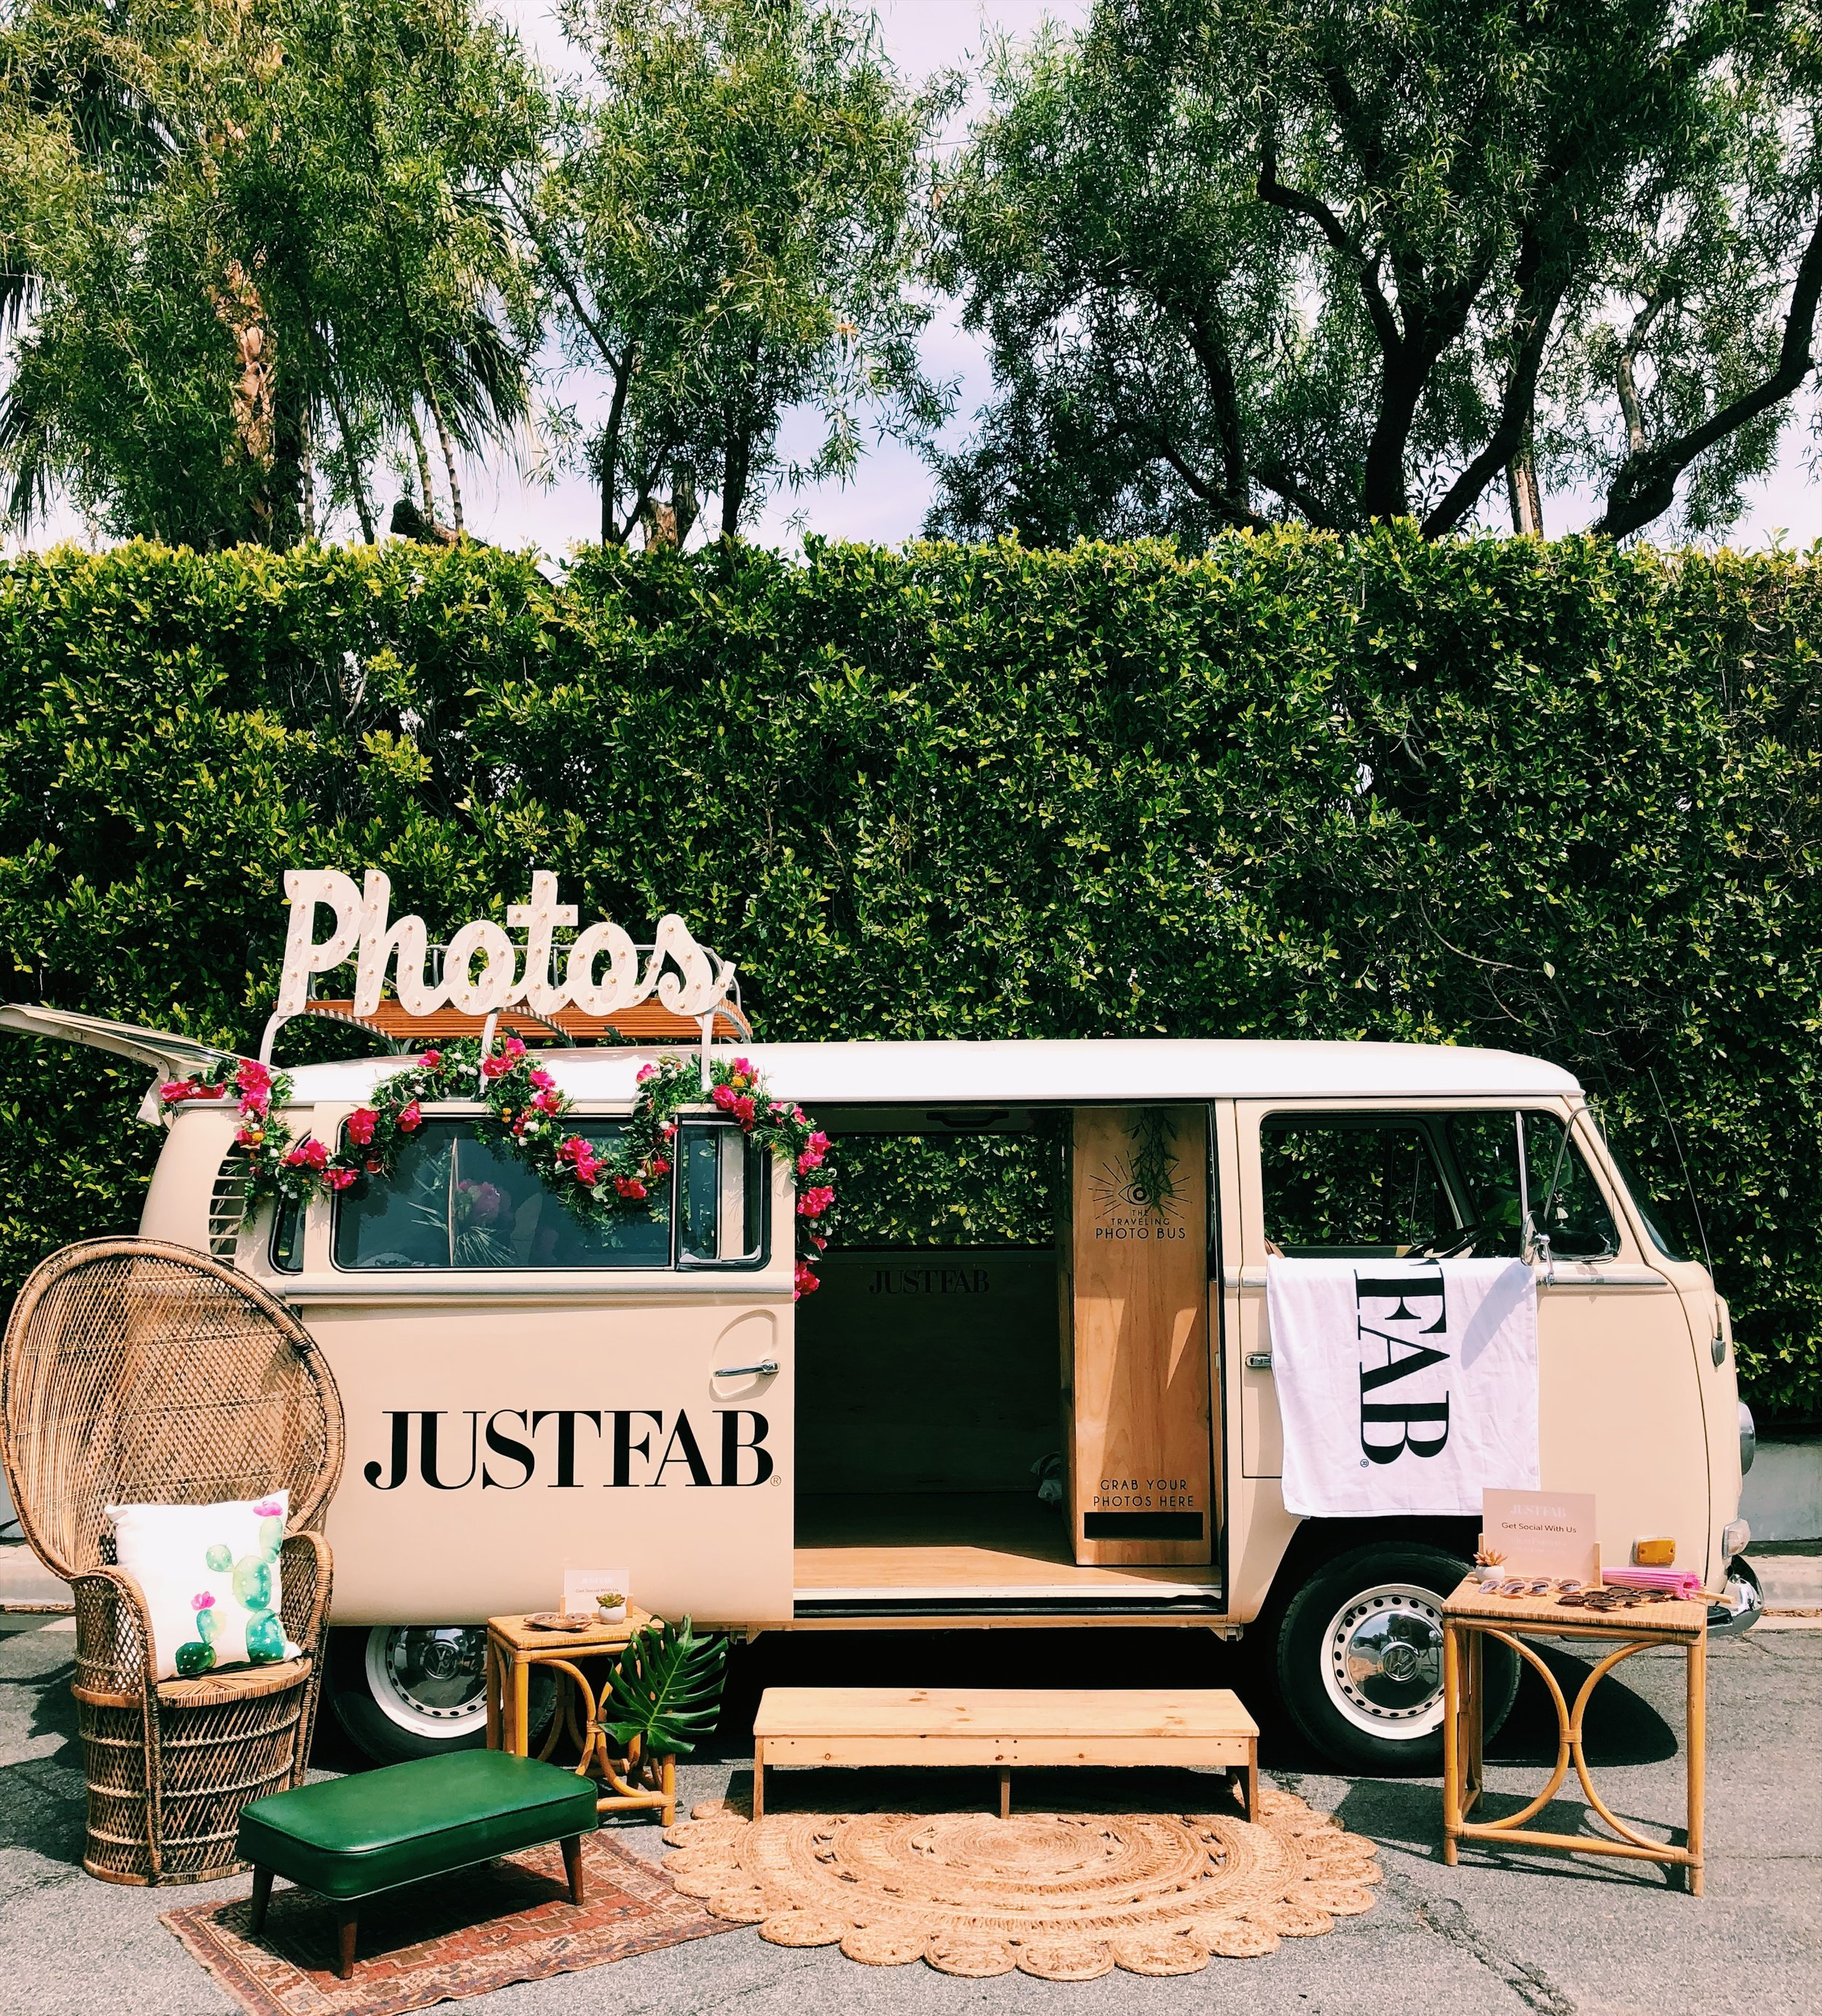 palm springs photo booth bus.JPG